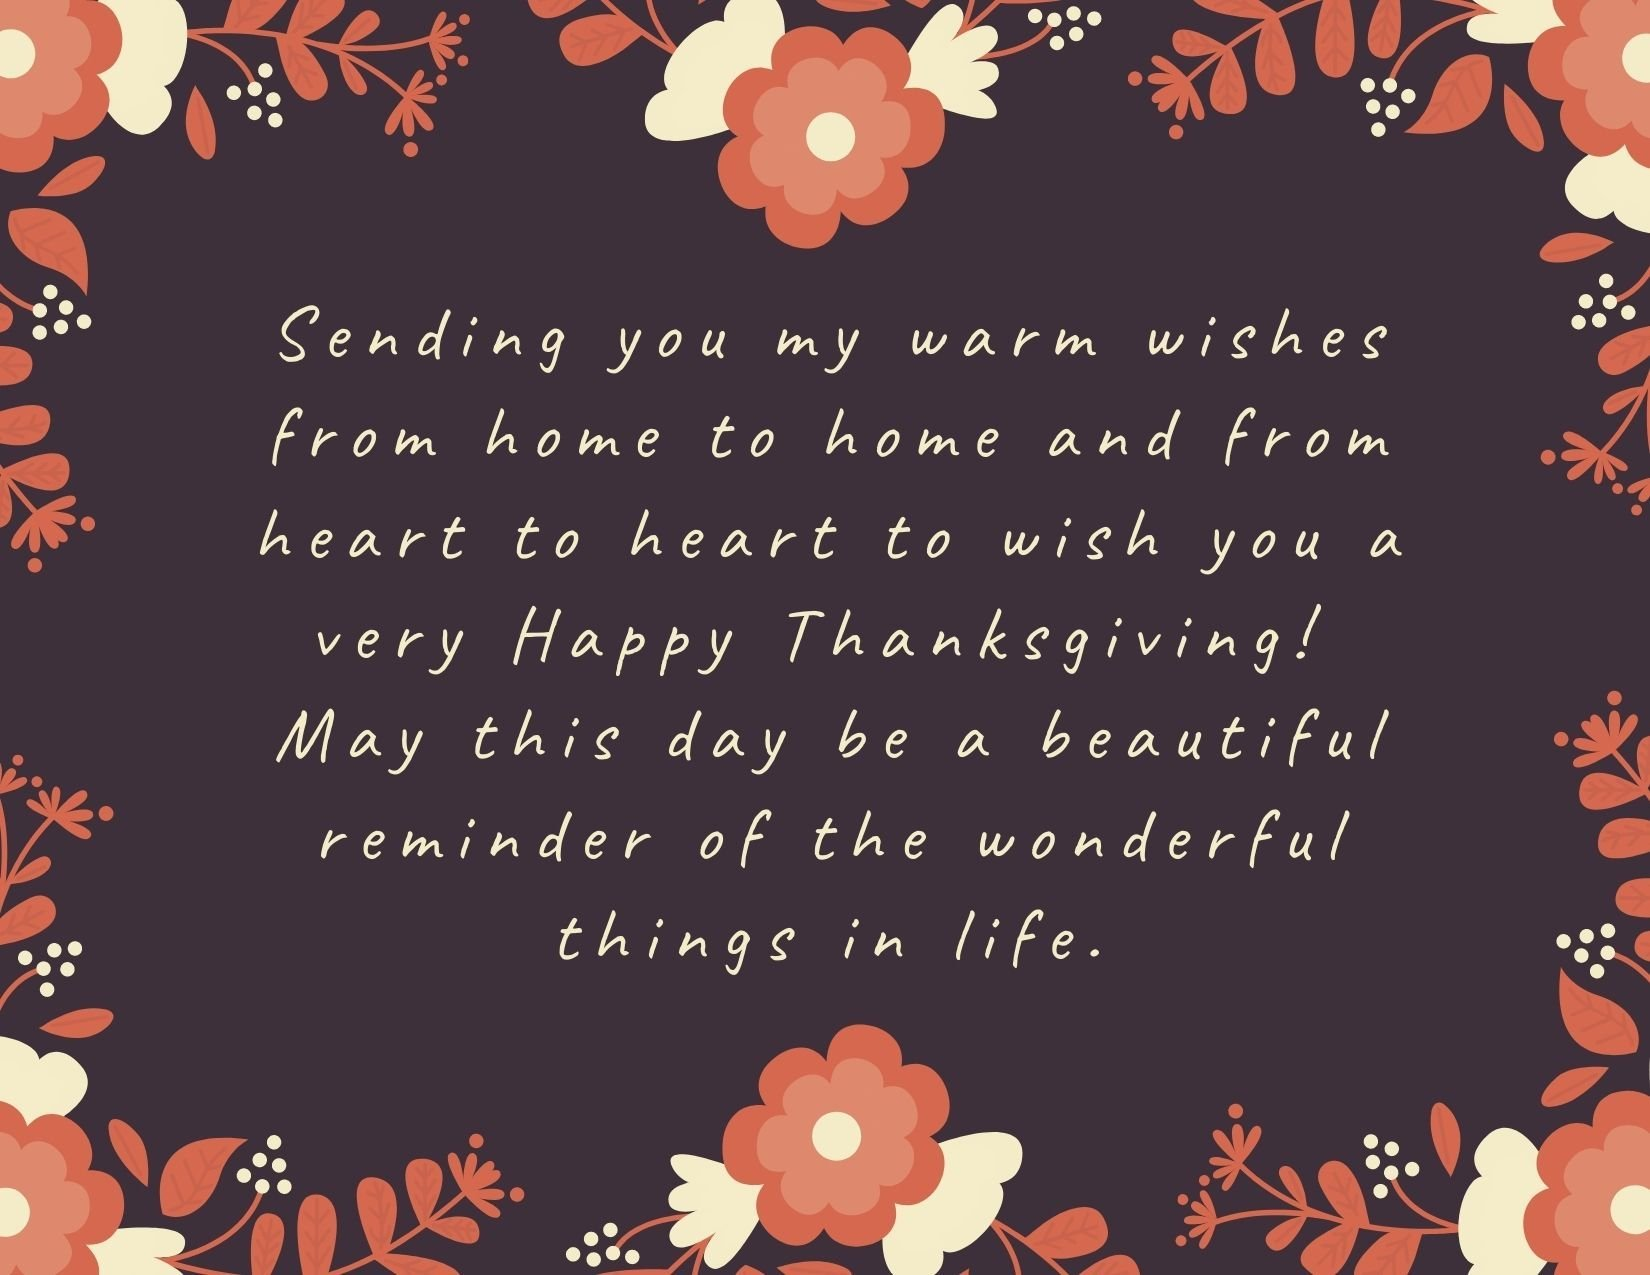 TEXT: Sending you my warm wishes from home to home and from heart to heart to wish you a very Happy Thanksgiving! May this day be a beautiful reminder of the wonderful things in life. IMAGE: Floral wreath border